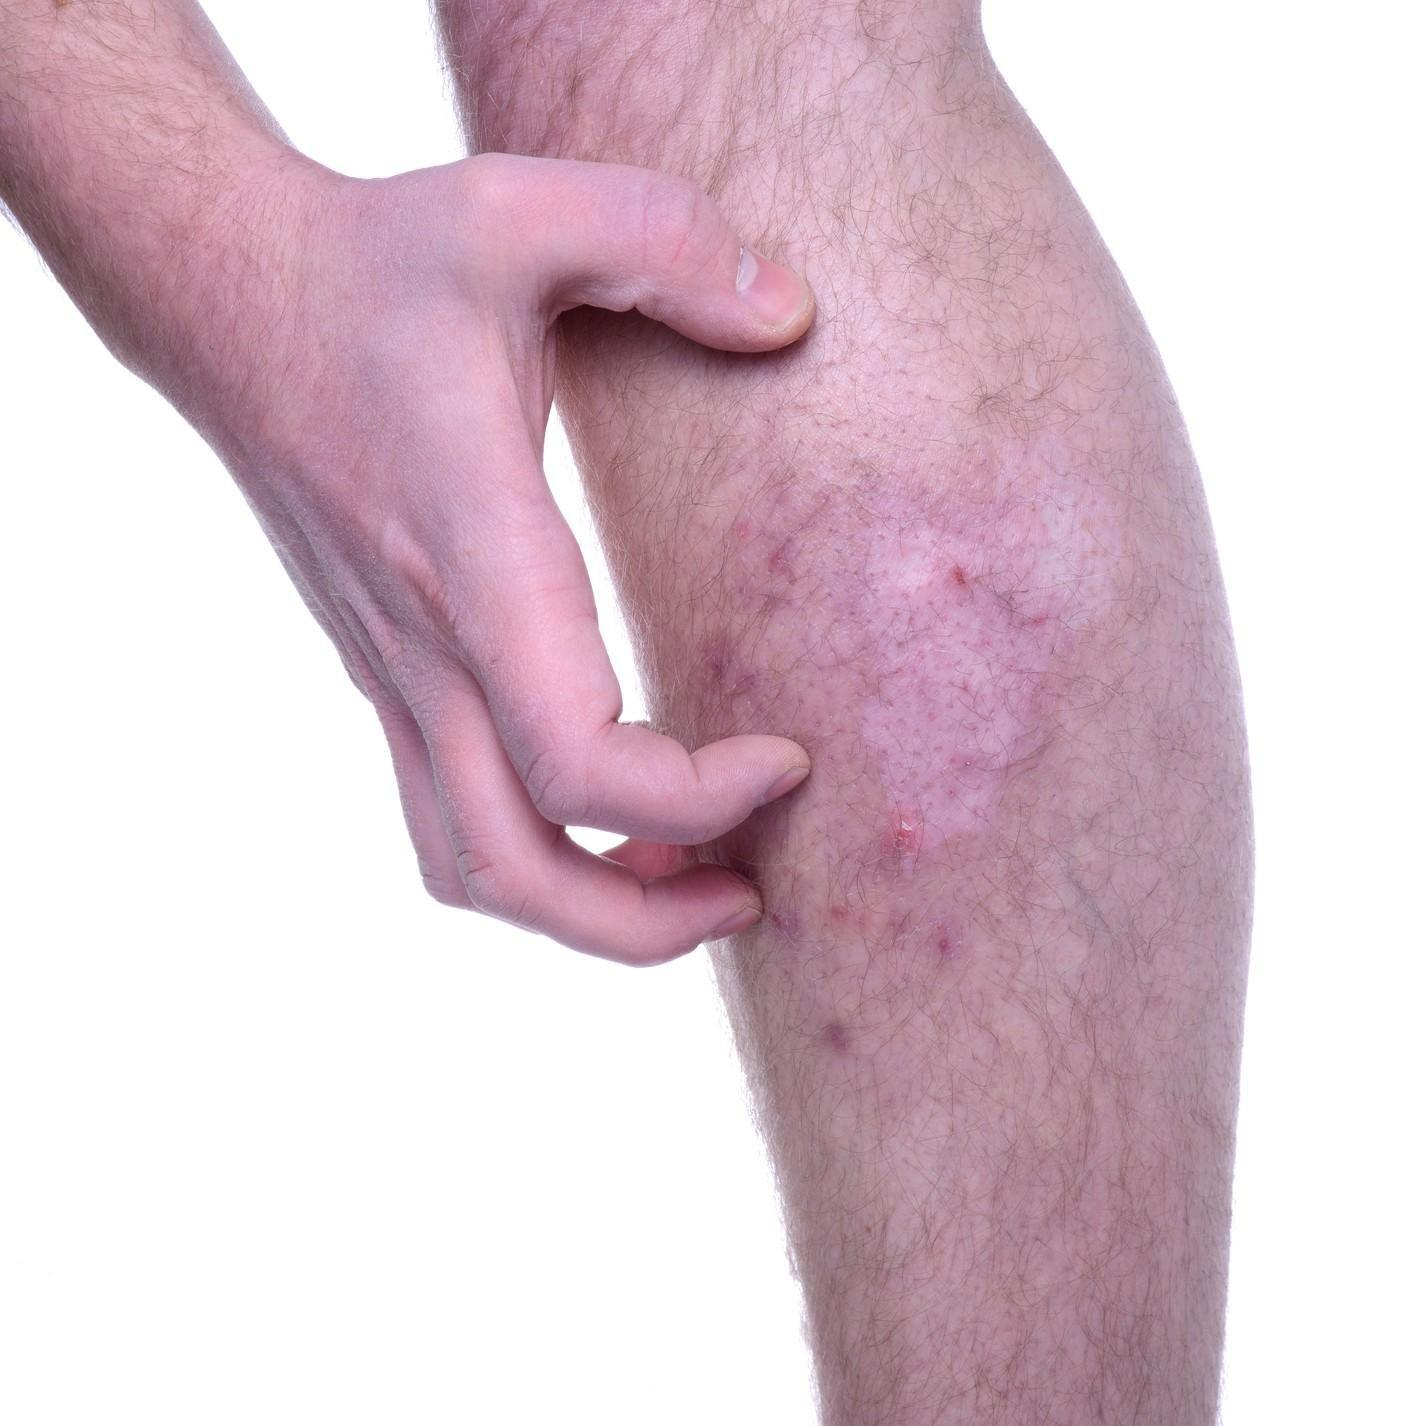 Itchy Skin May Be A Warning Sign Of Type 2 Diabetes